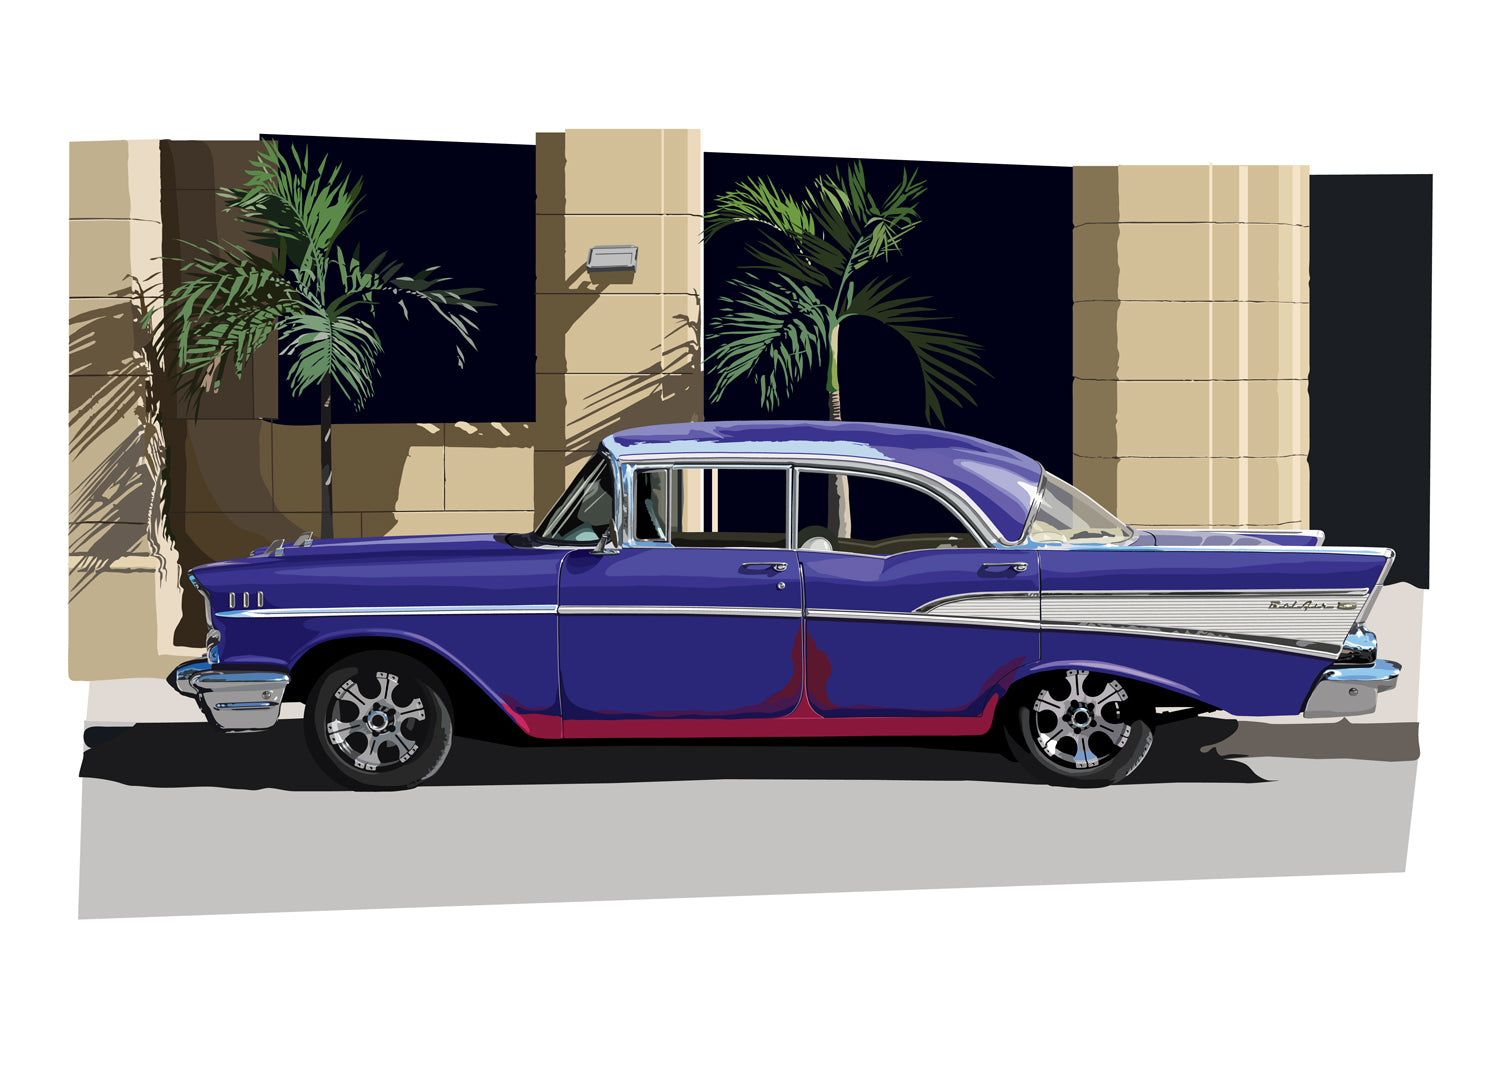 1957 Chevrolet Bel Air - Havana